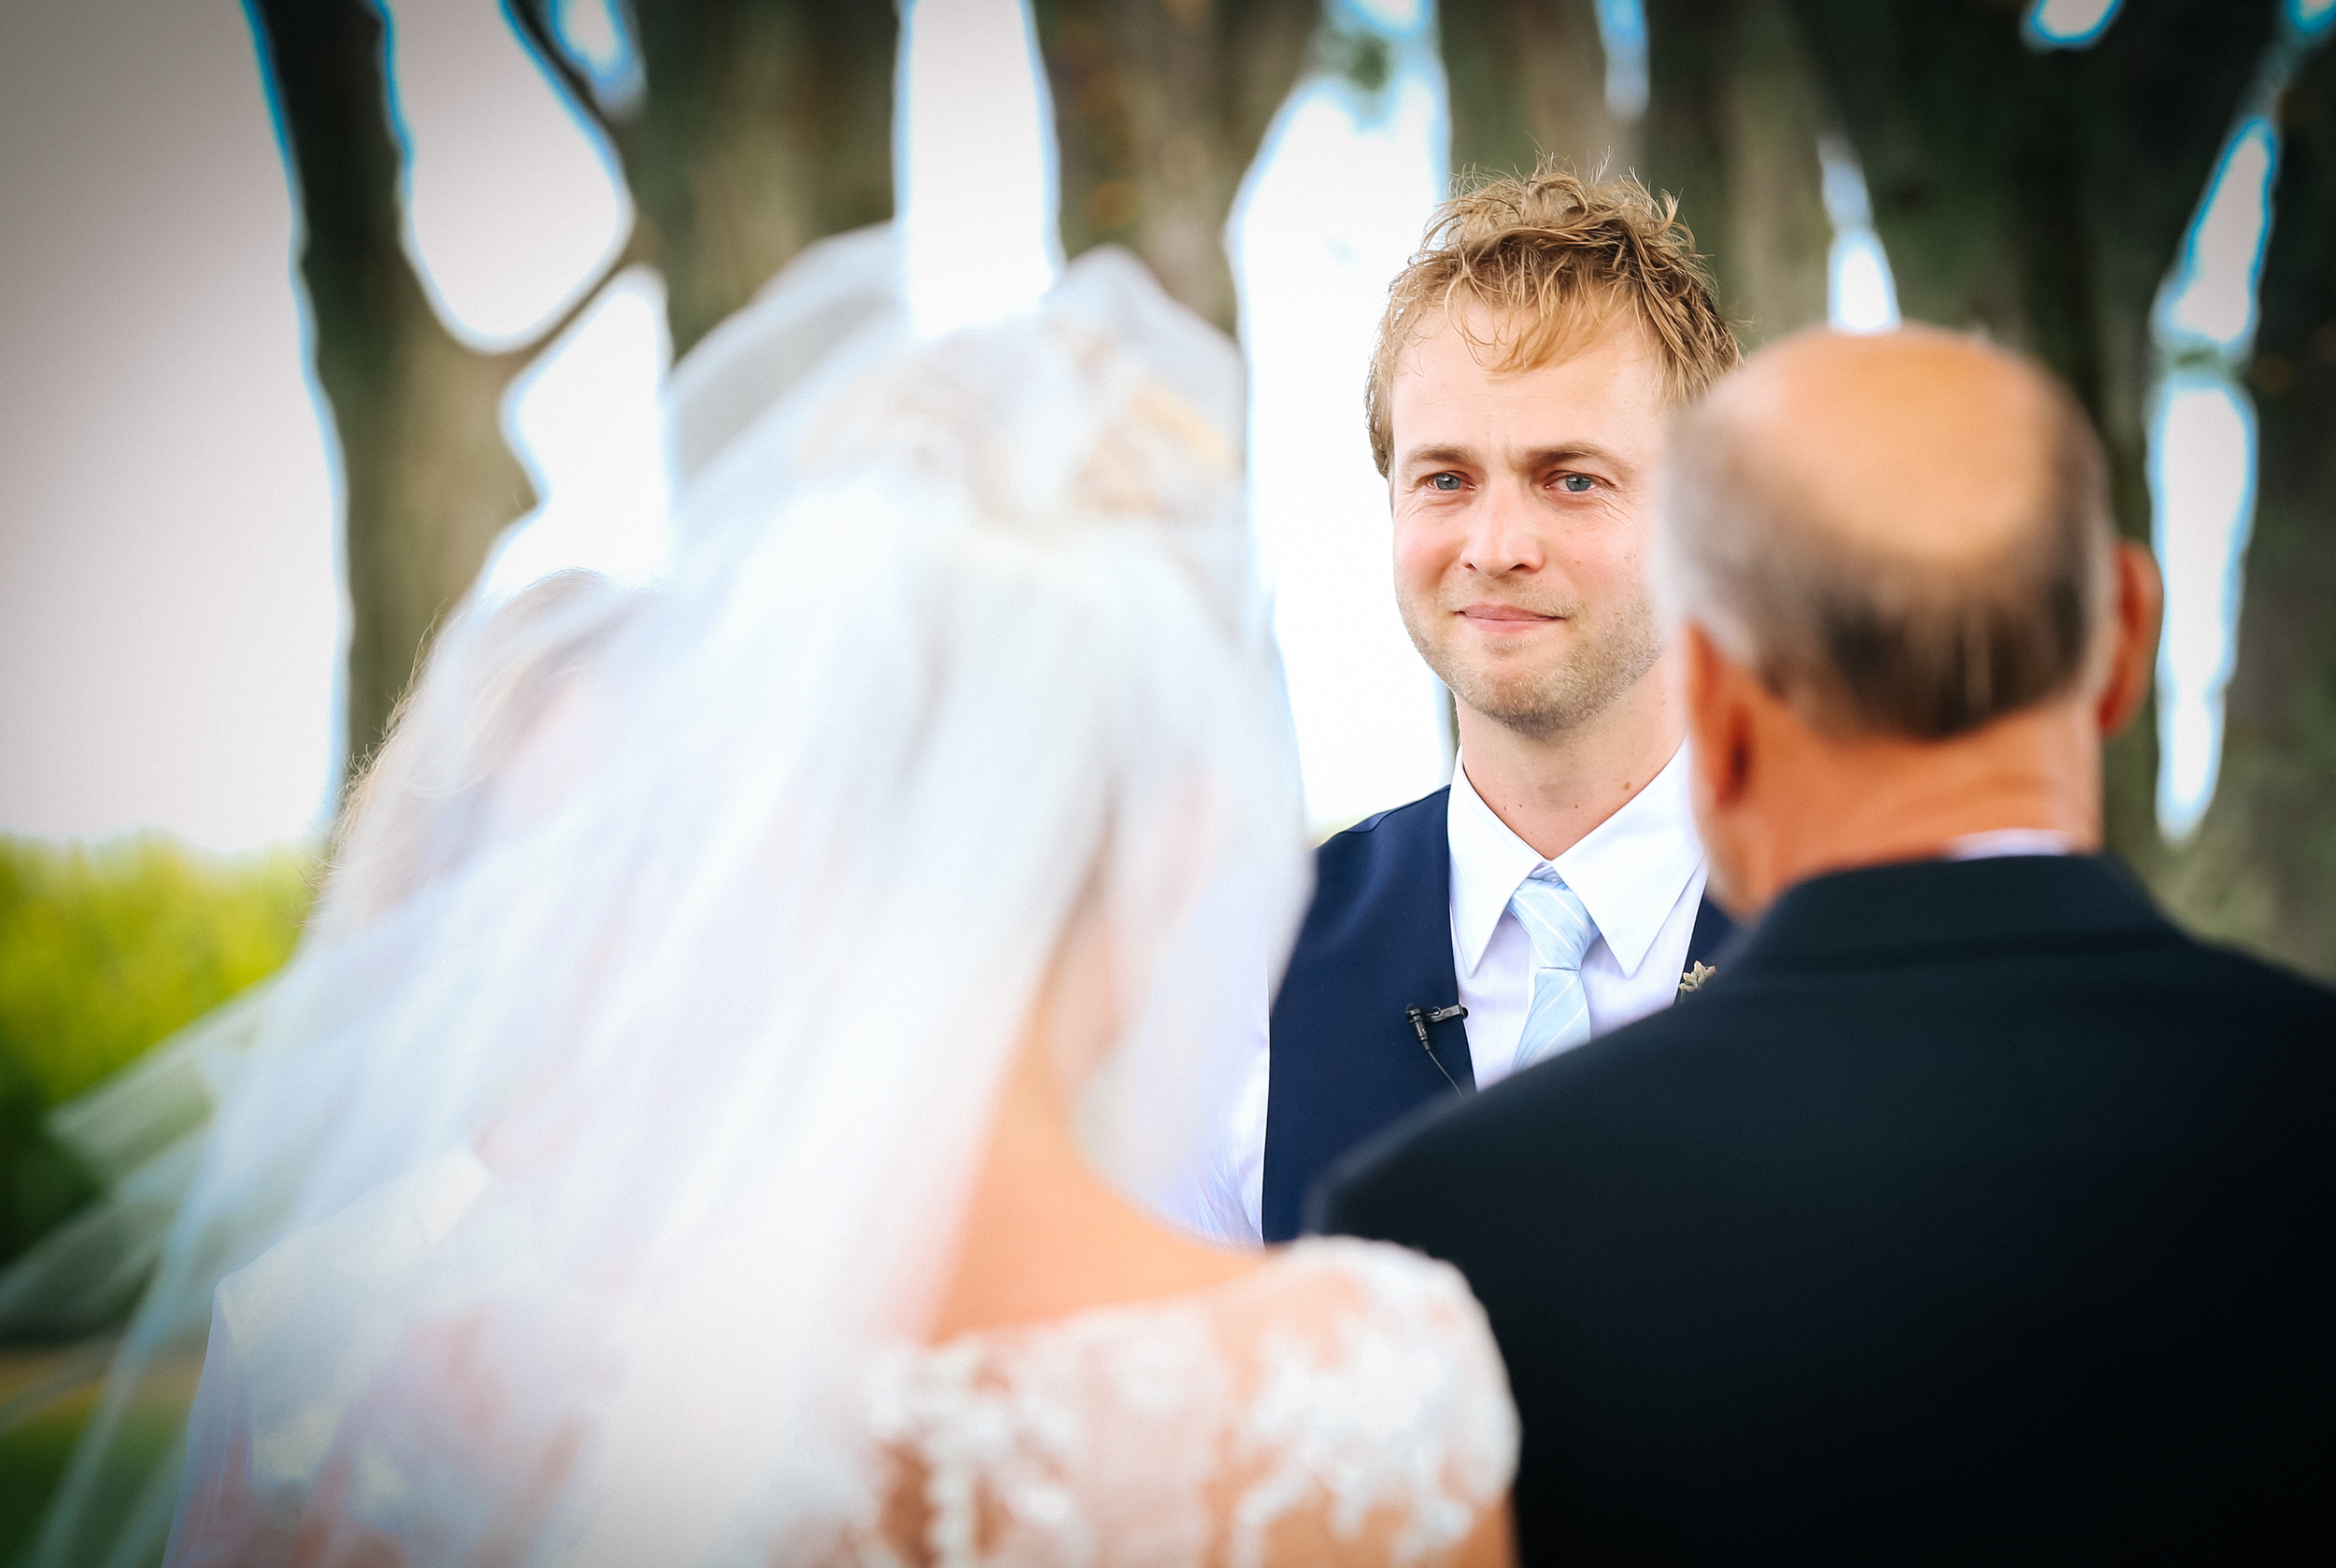 Minnesota wedding photographer grooms reactions